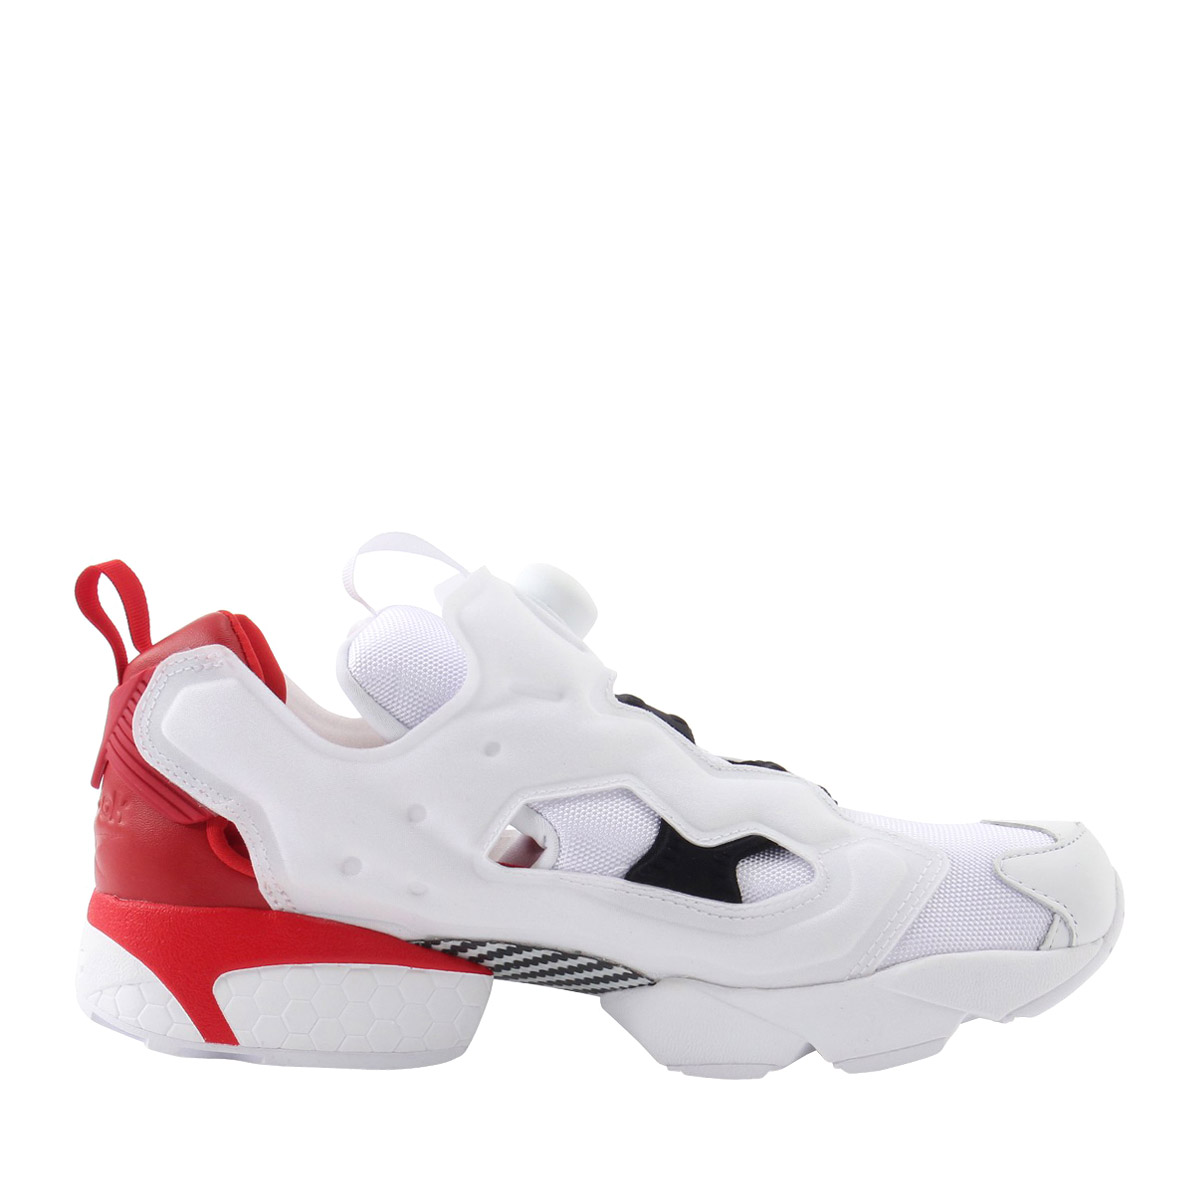 Reebok INSTAPUMP FURY POP (リーボックインスタポンプフューリー POP) (WHITE/SCARLET/BLACK) 17SS-S